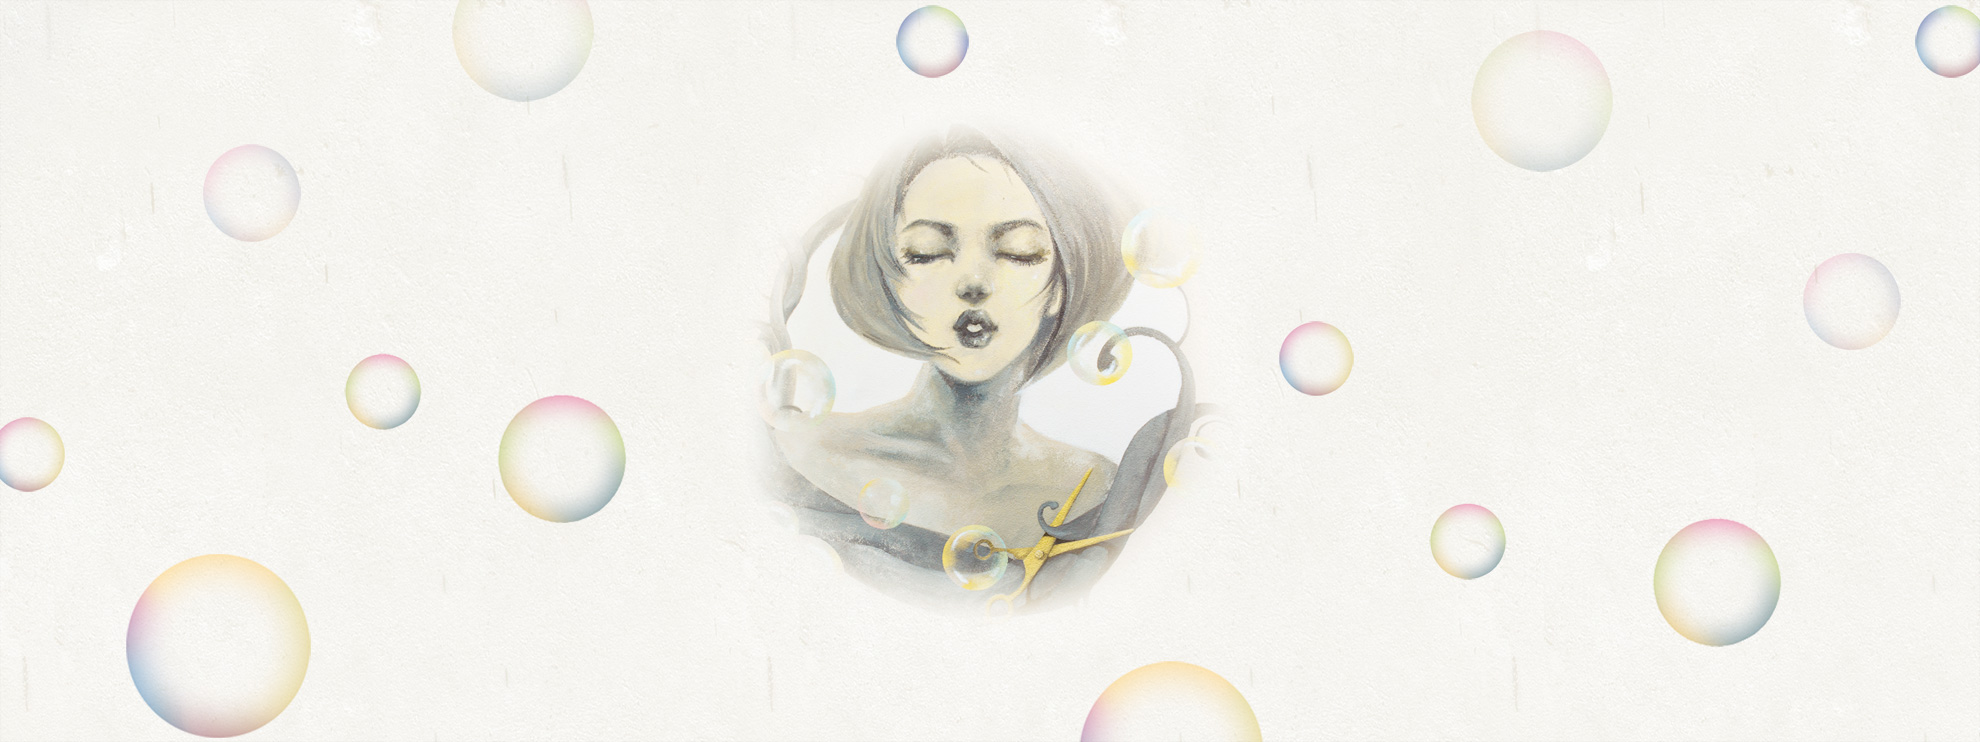 bubble-pop-electric-salon-wall-painting